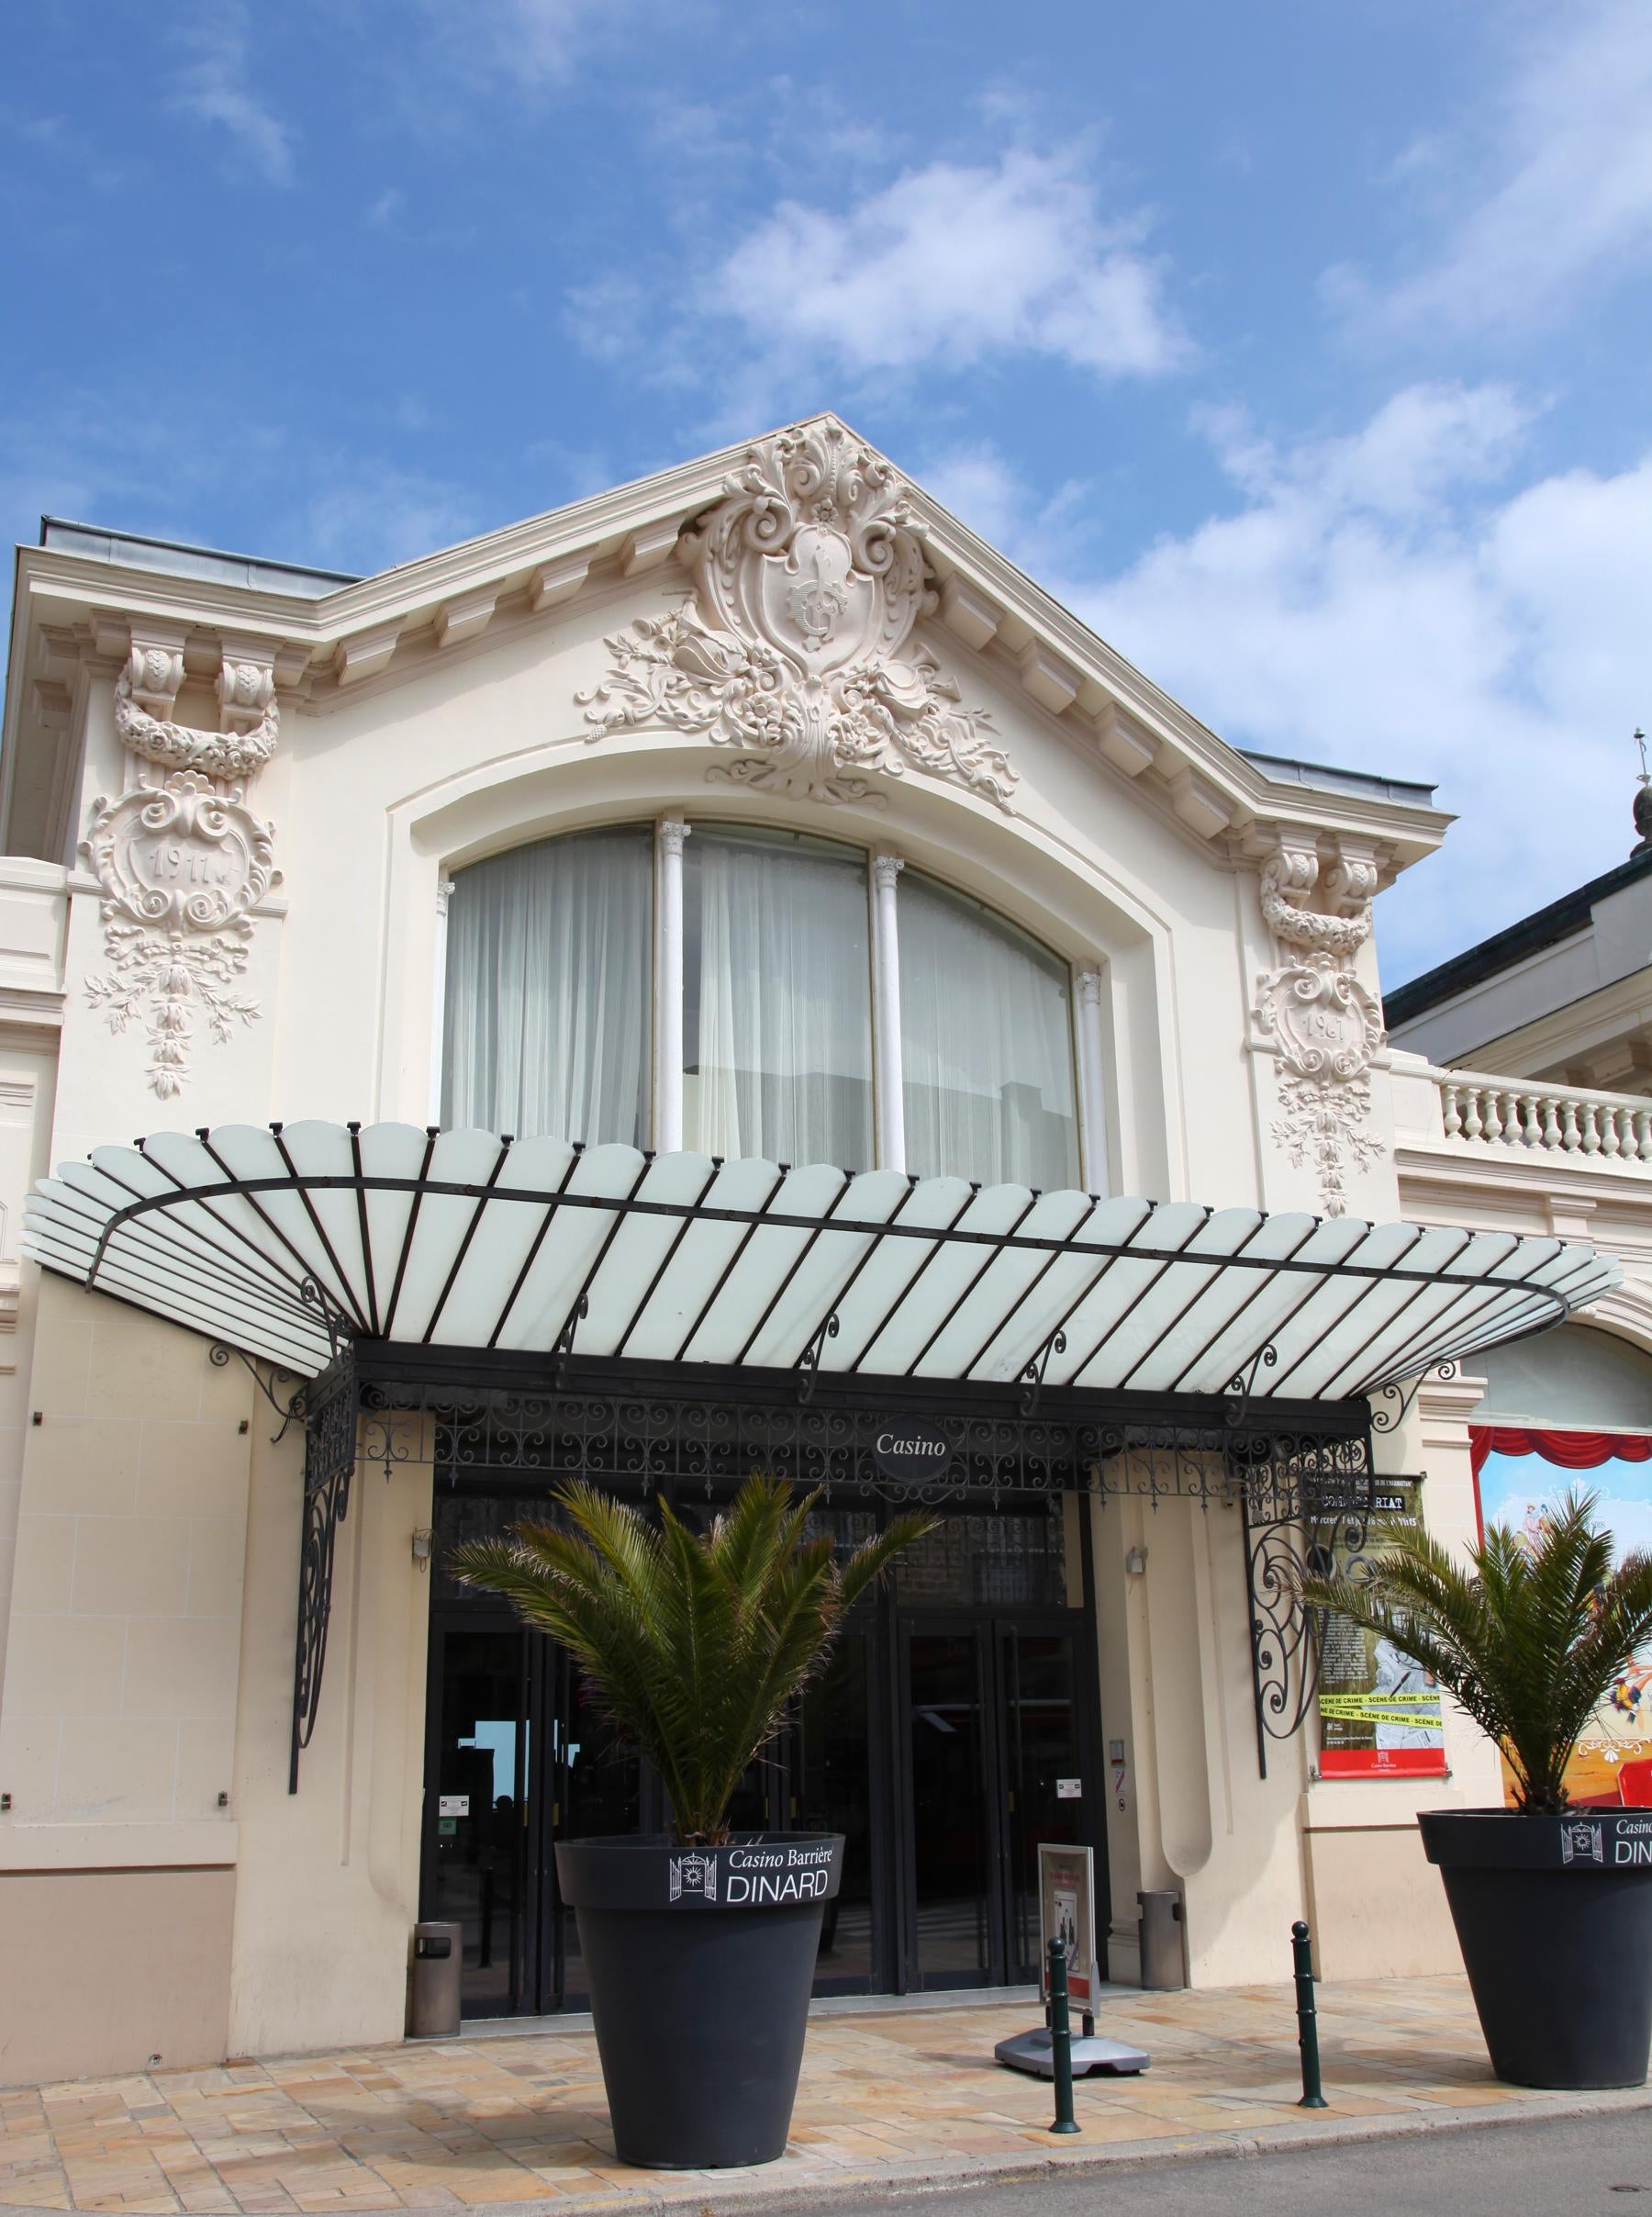 Casino Barriere de Dinard